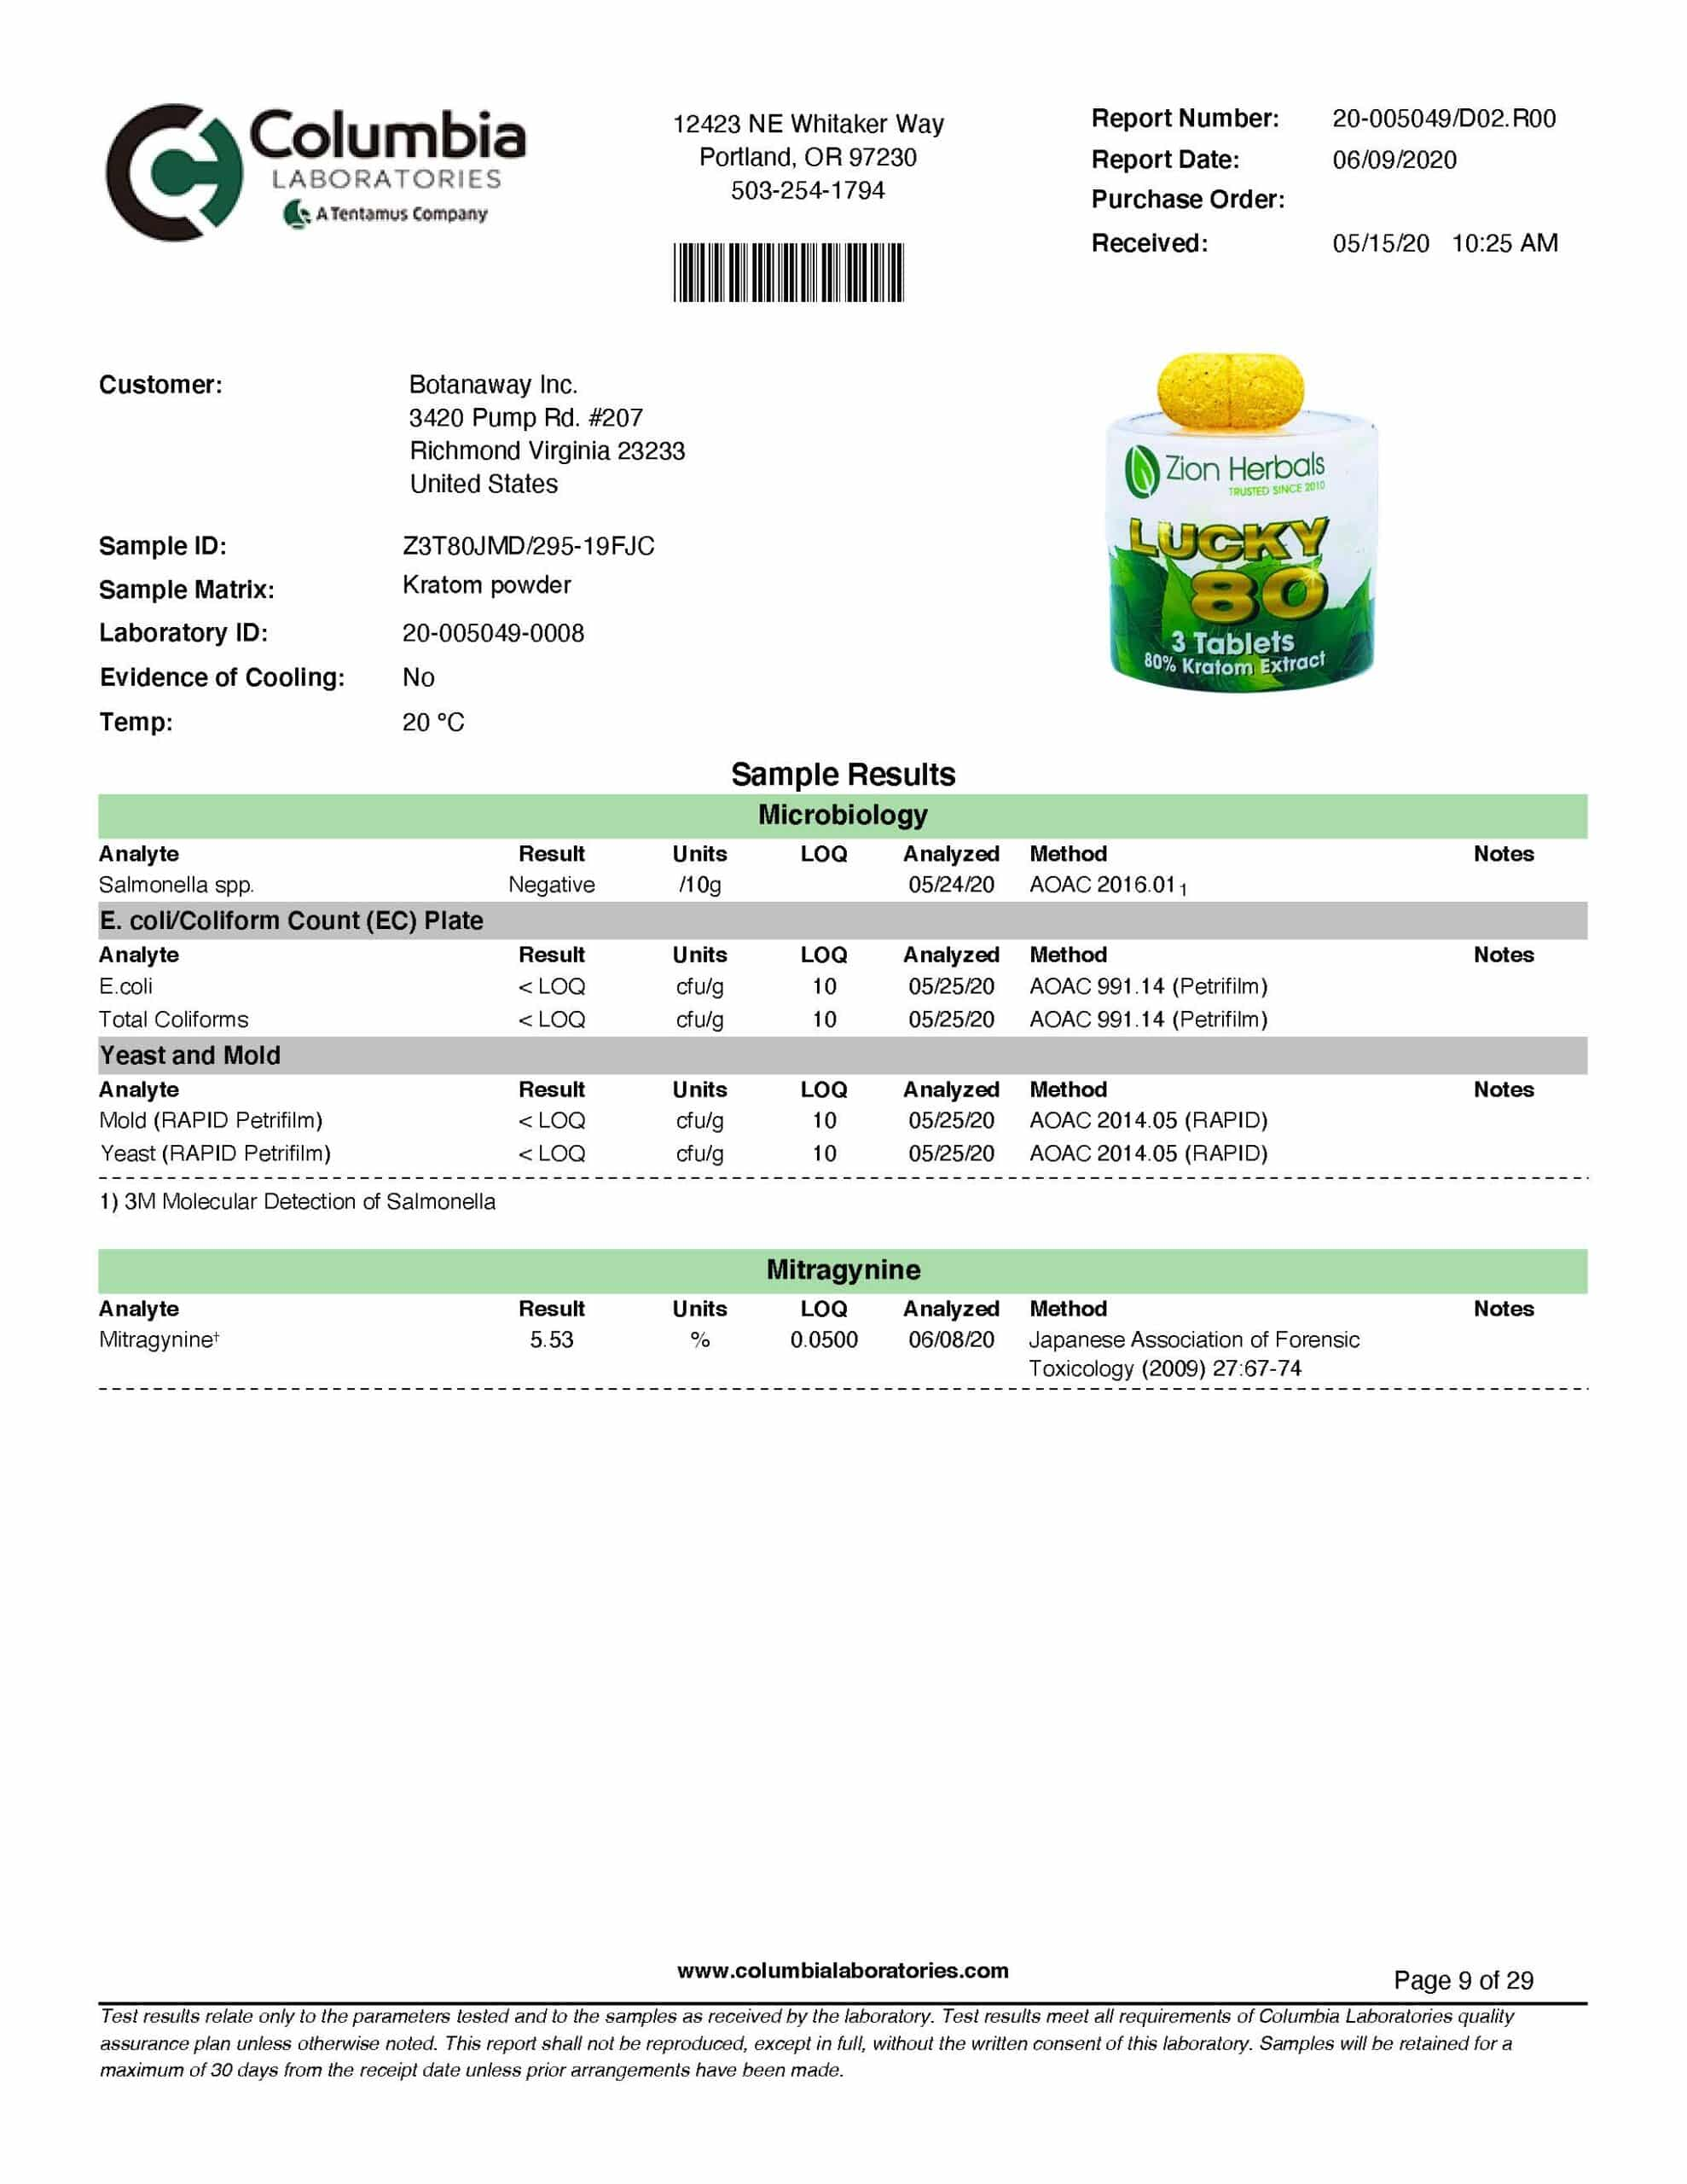 Zion Herbals Lucky 80 3ct Tablets Lab Test